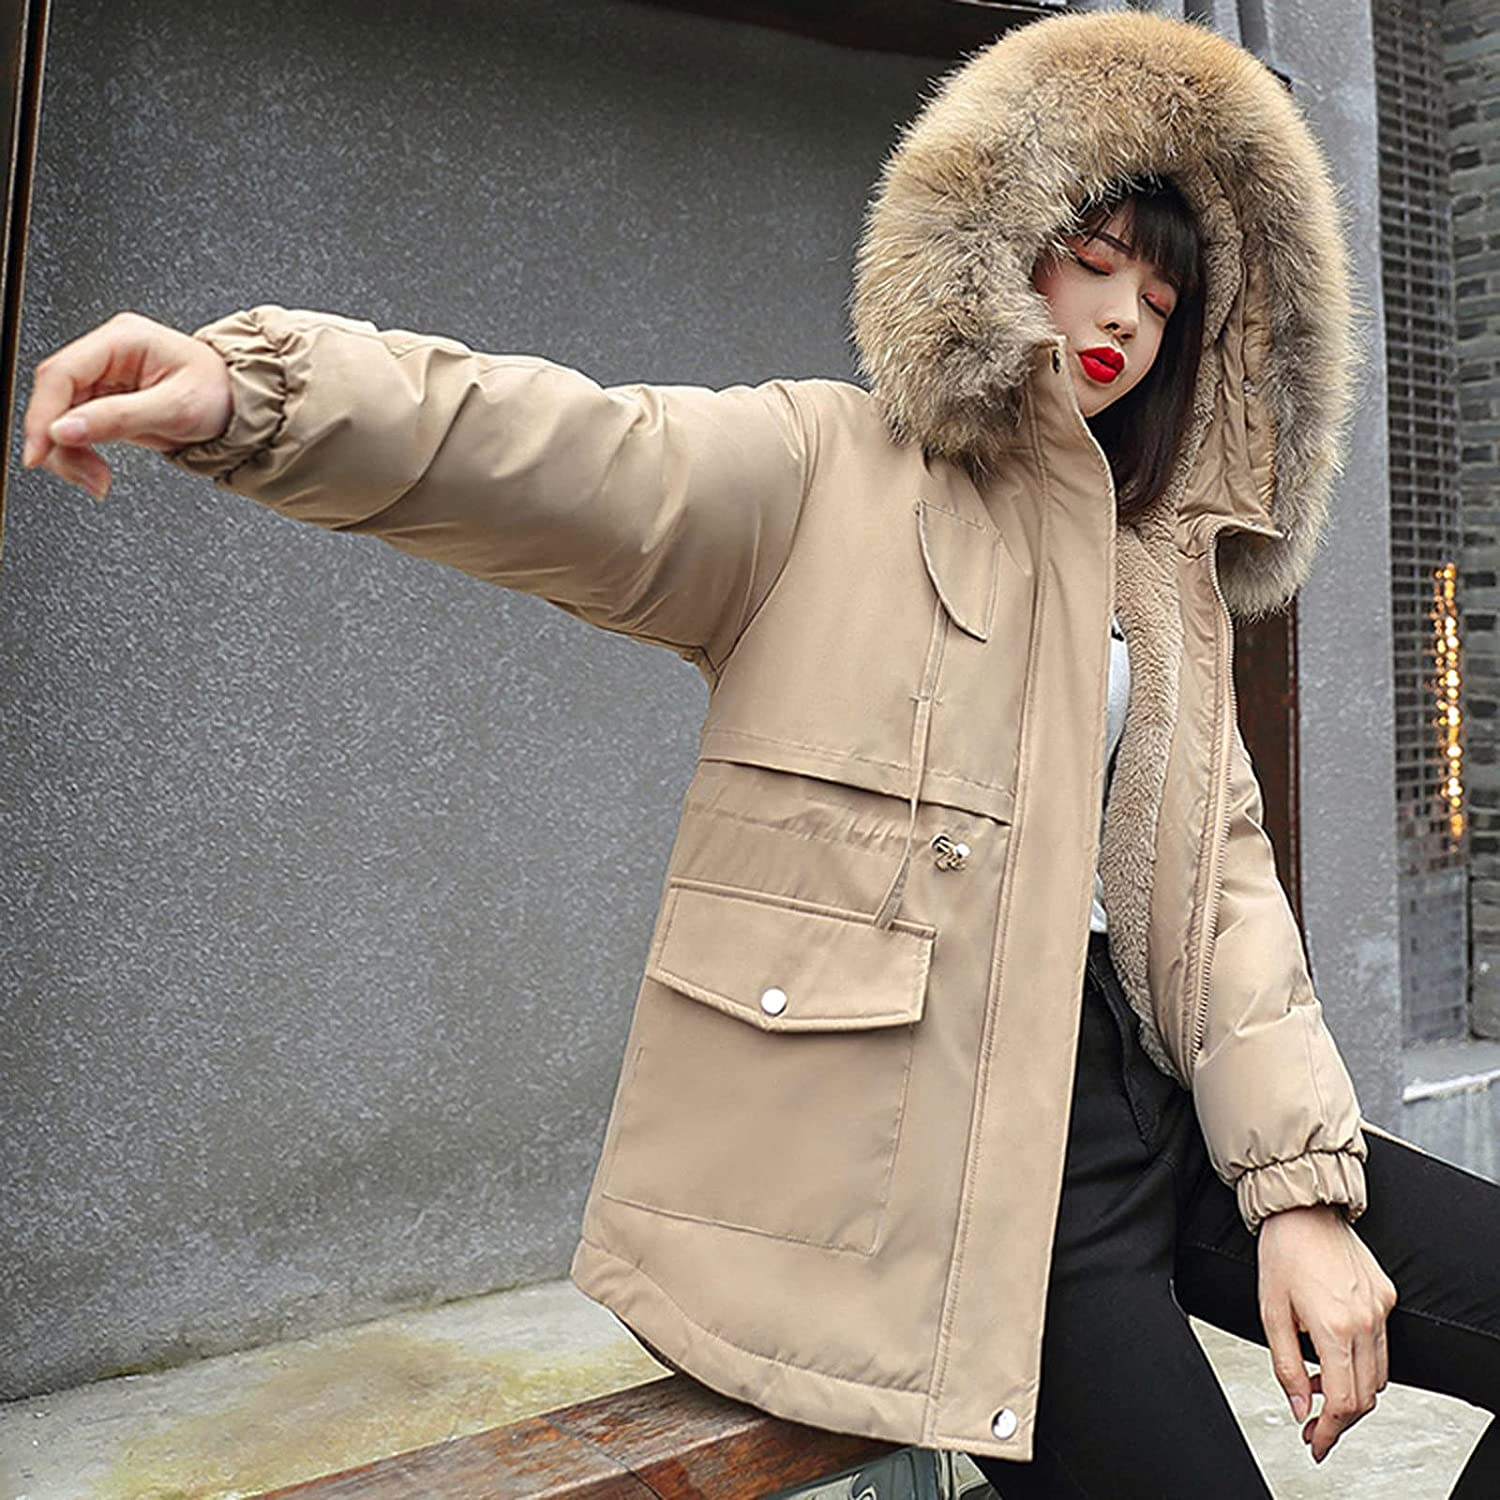 Women's Pure Color Down Coats Fur Hooded Zipper Warm Thicken Puffer Jacket With Pockets Belted Waist Overcoat